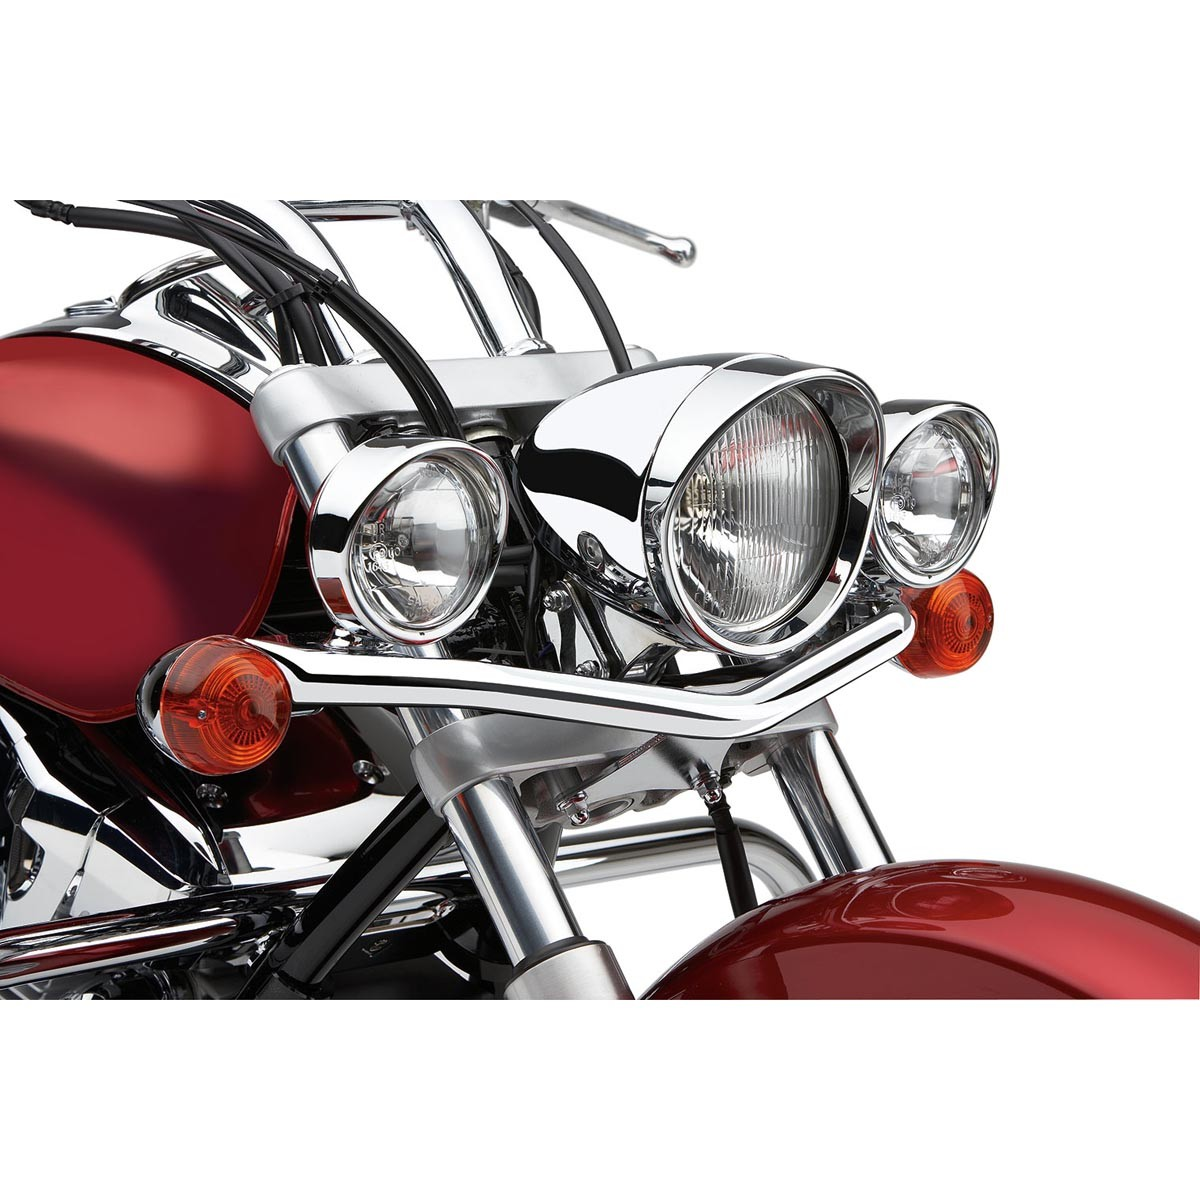 COBRA Light-bar with Spotlights Style B for HONDA VTX1300T(08-09) - #04-0153